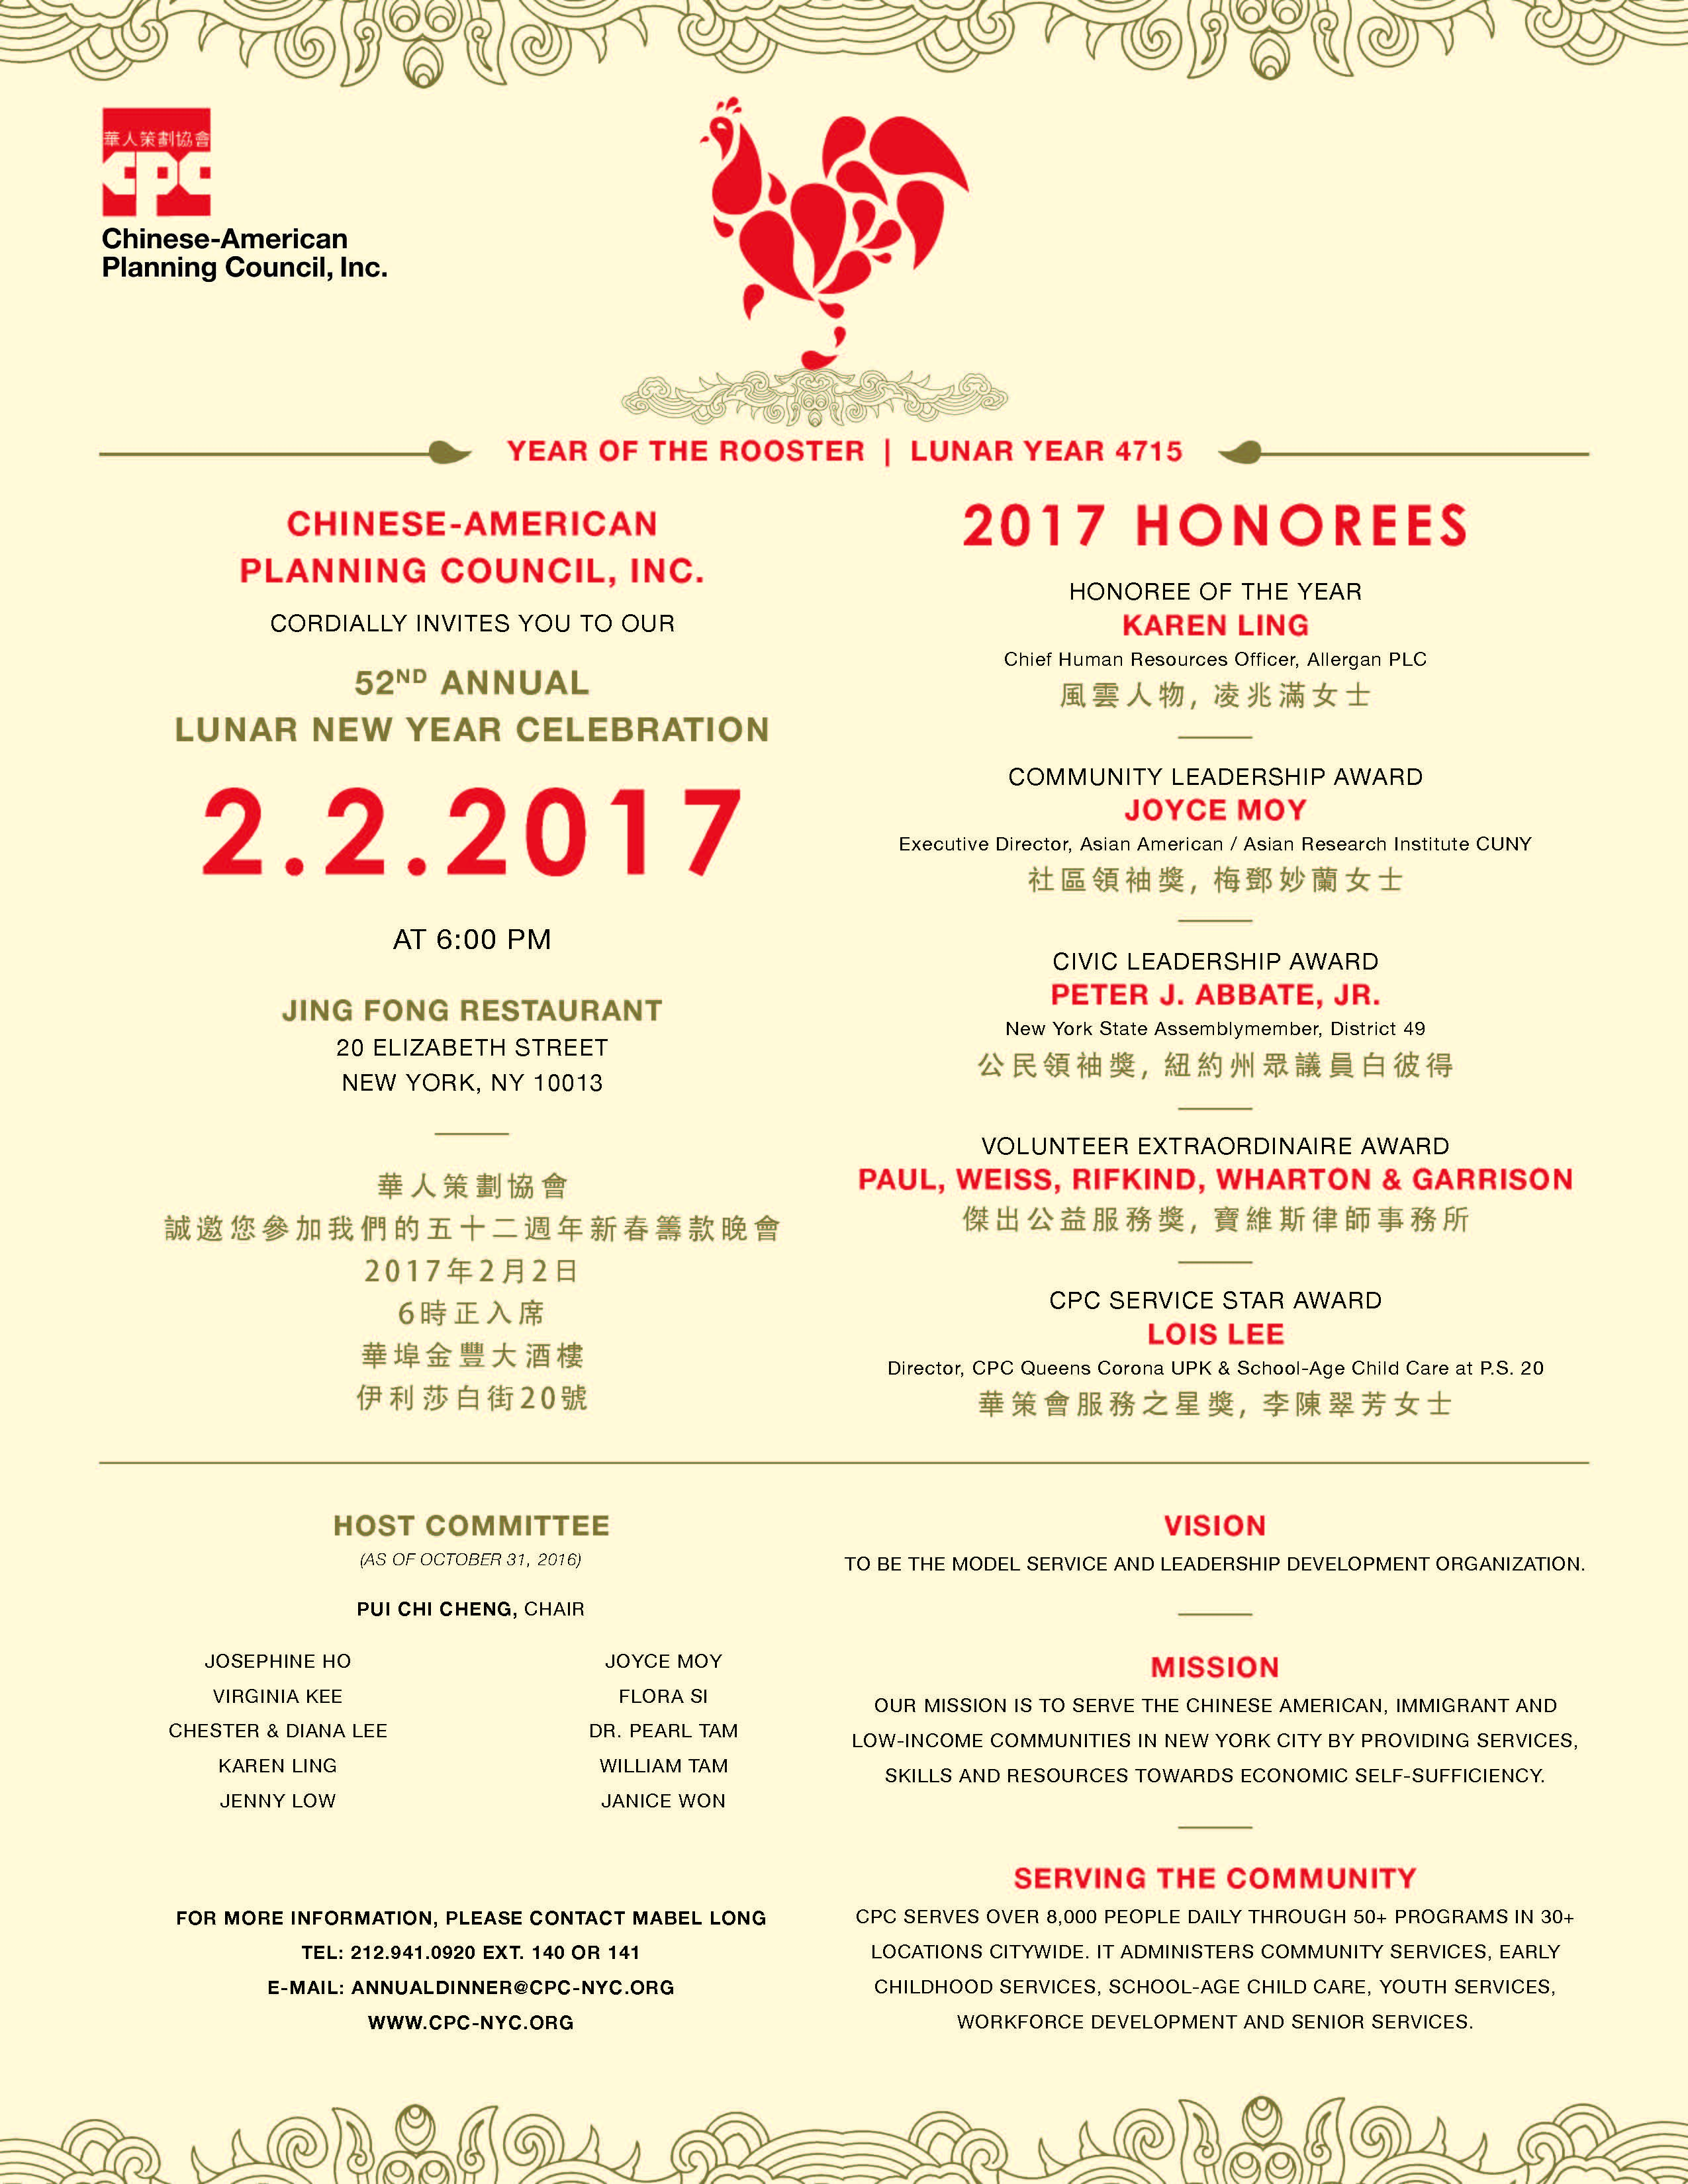 the chinese american planning council inc cpc we would like to invite you to join cpcs 52nd annual lunar new year celebration fundraising dinner on